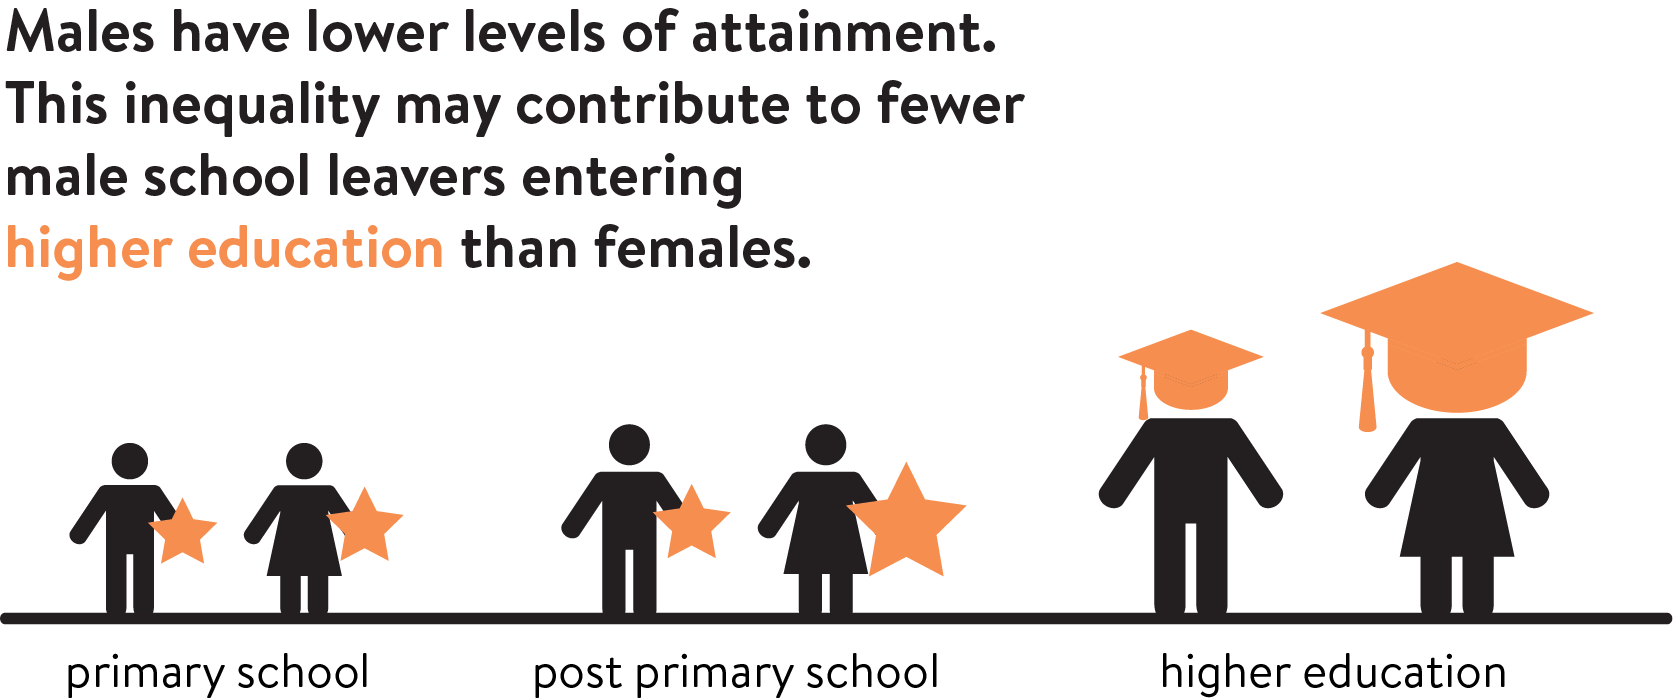 Males have lower levers of attainment